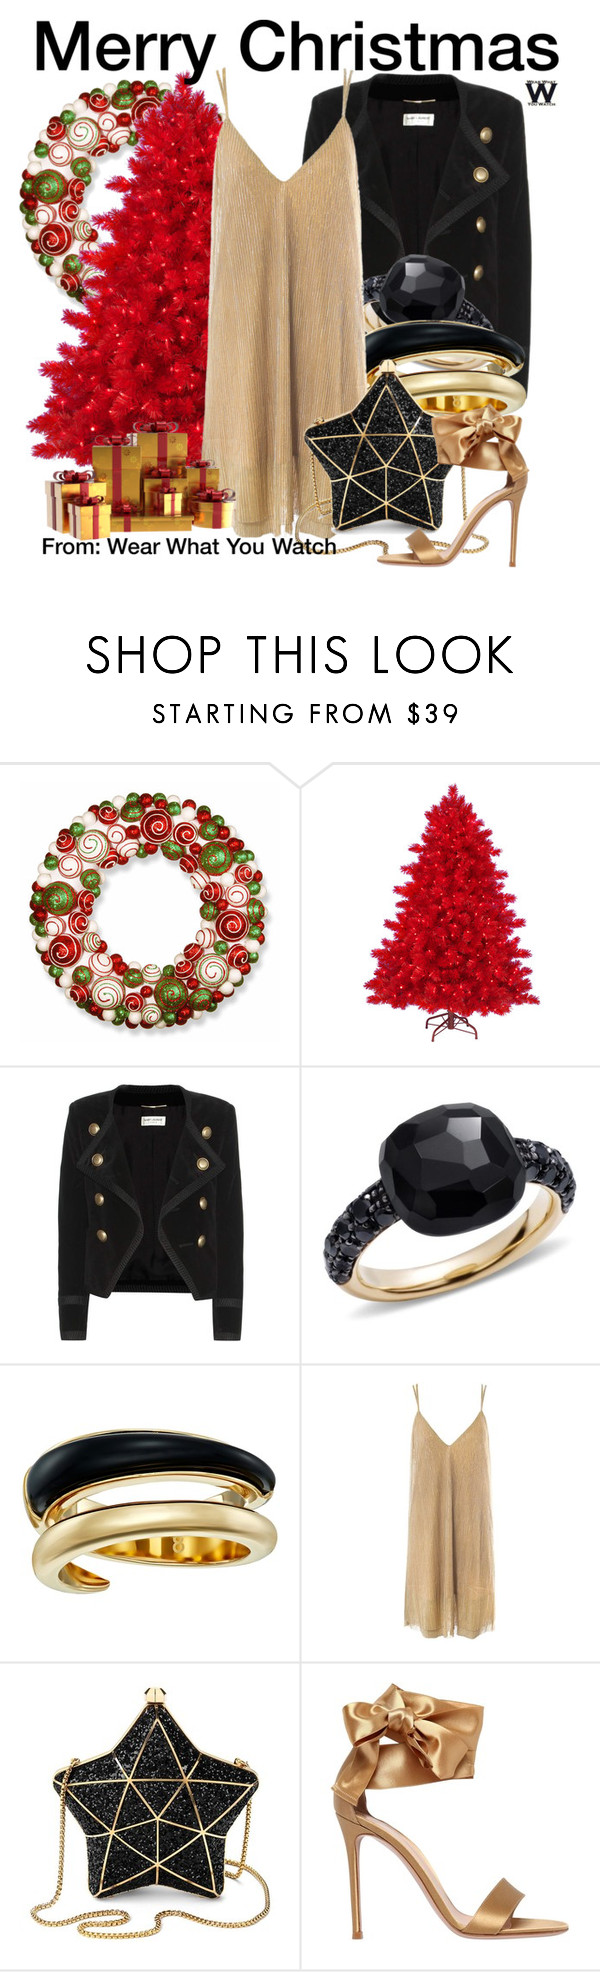 """Merry Christmas"" by wearwhatyouwatch ❤ liked on Polyvore featuring National Tree Company, Yves Saint Laurent, Pomellato, Michael Kors, Sans Souci, Aspinal of London and Gianvito Rossi"